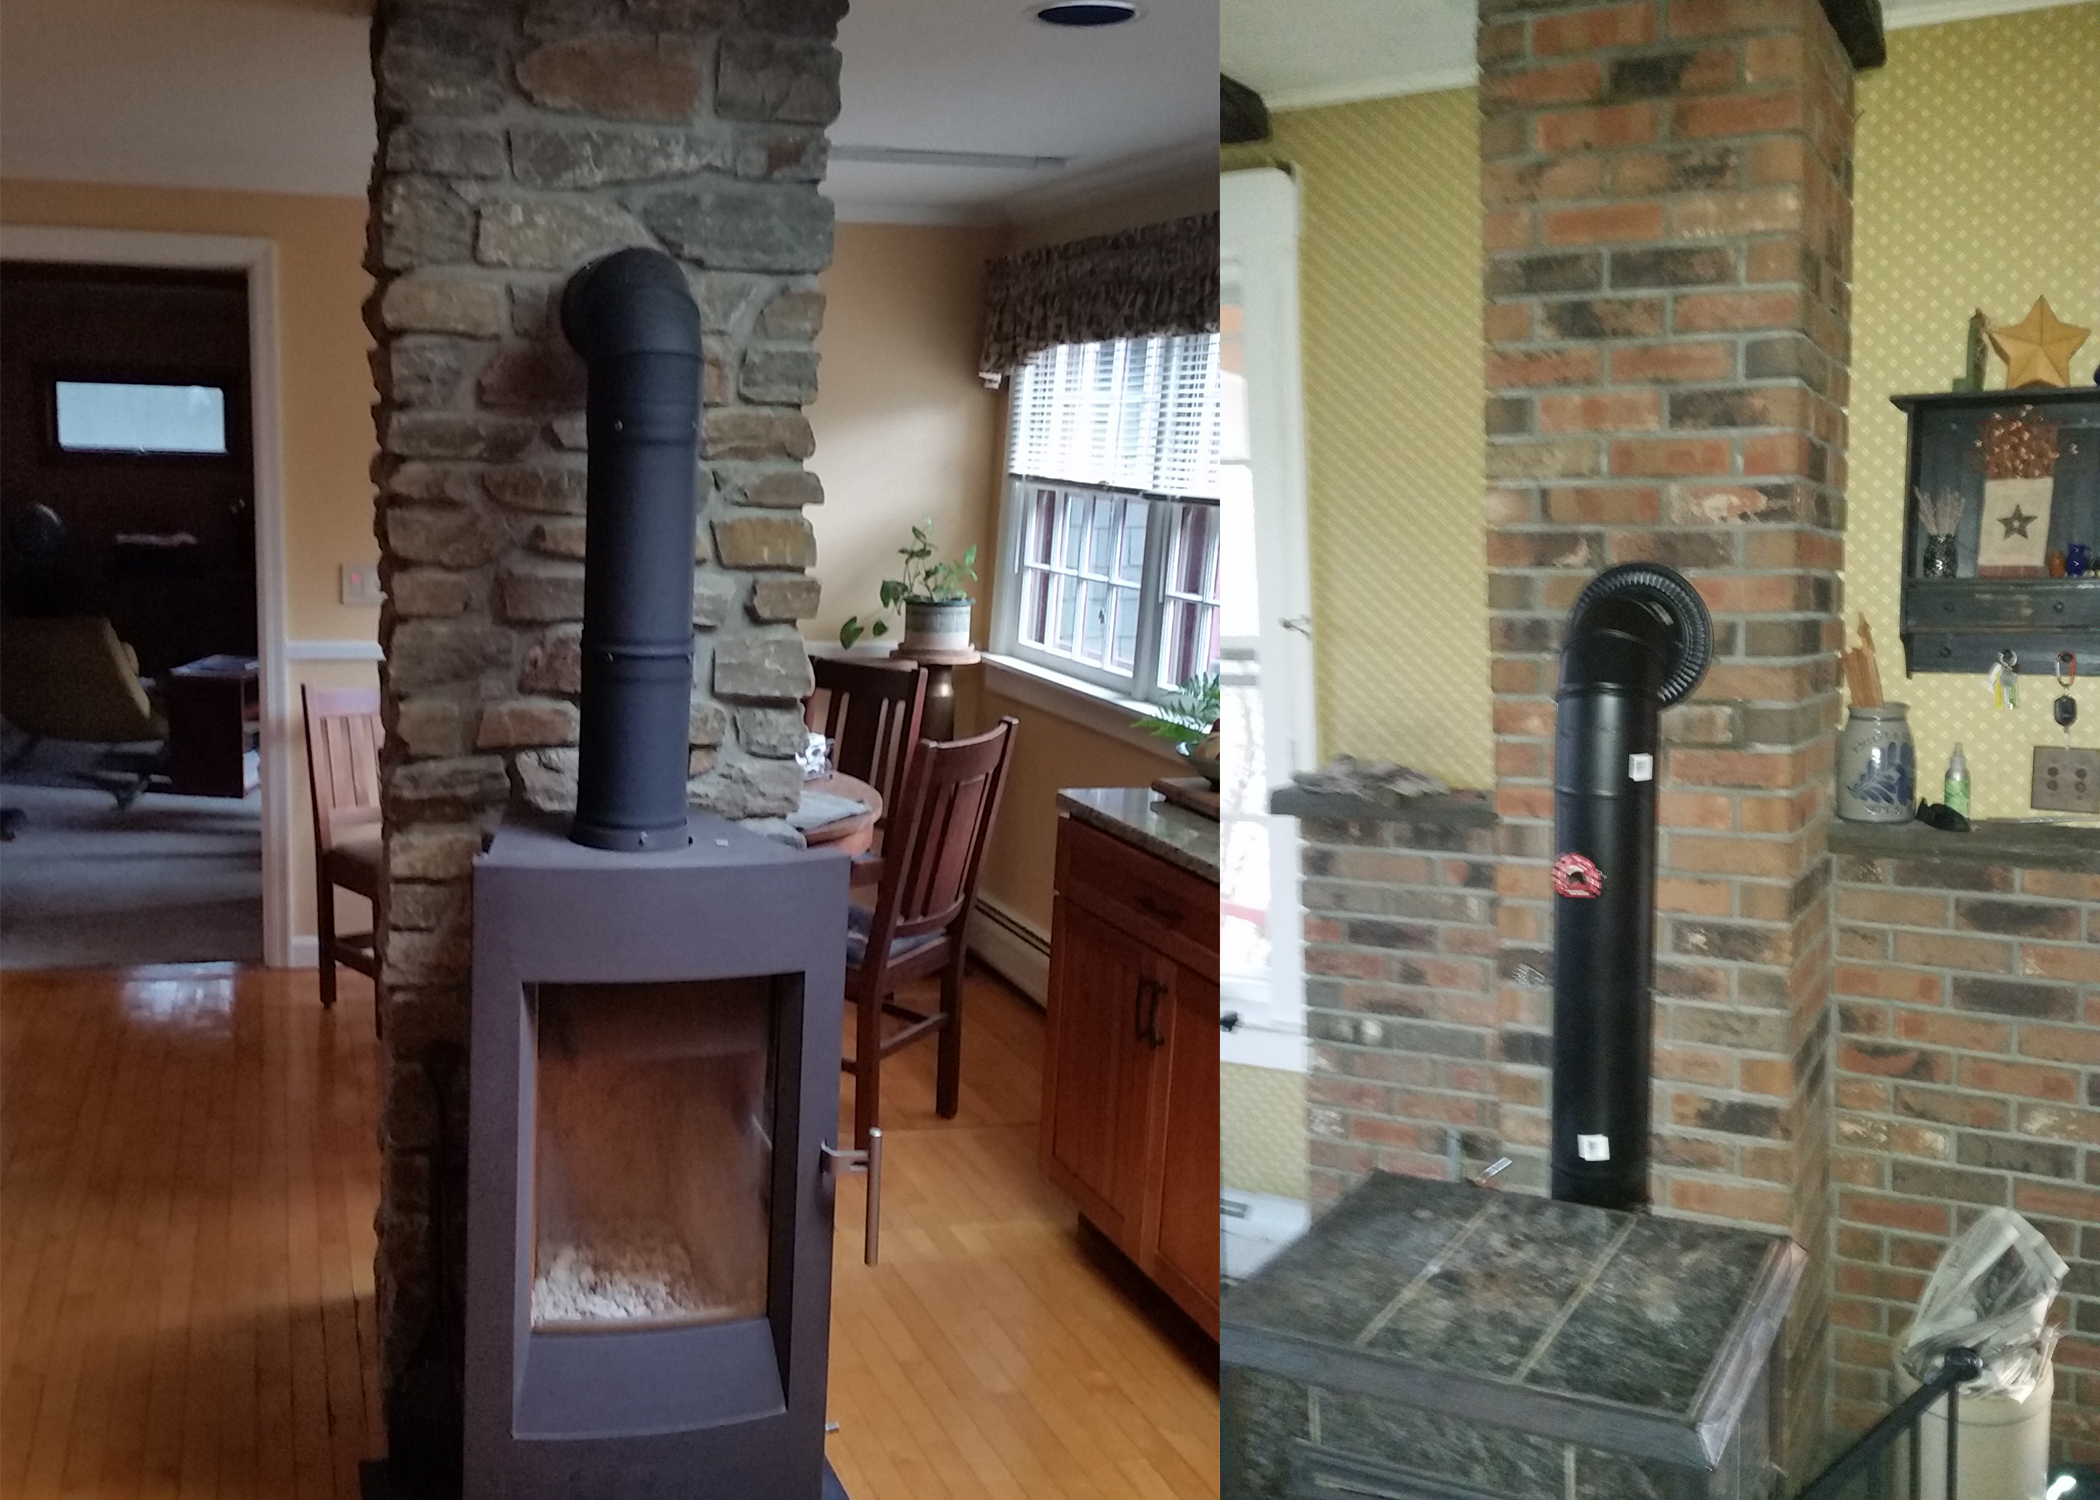 Stove Pipe installation -